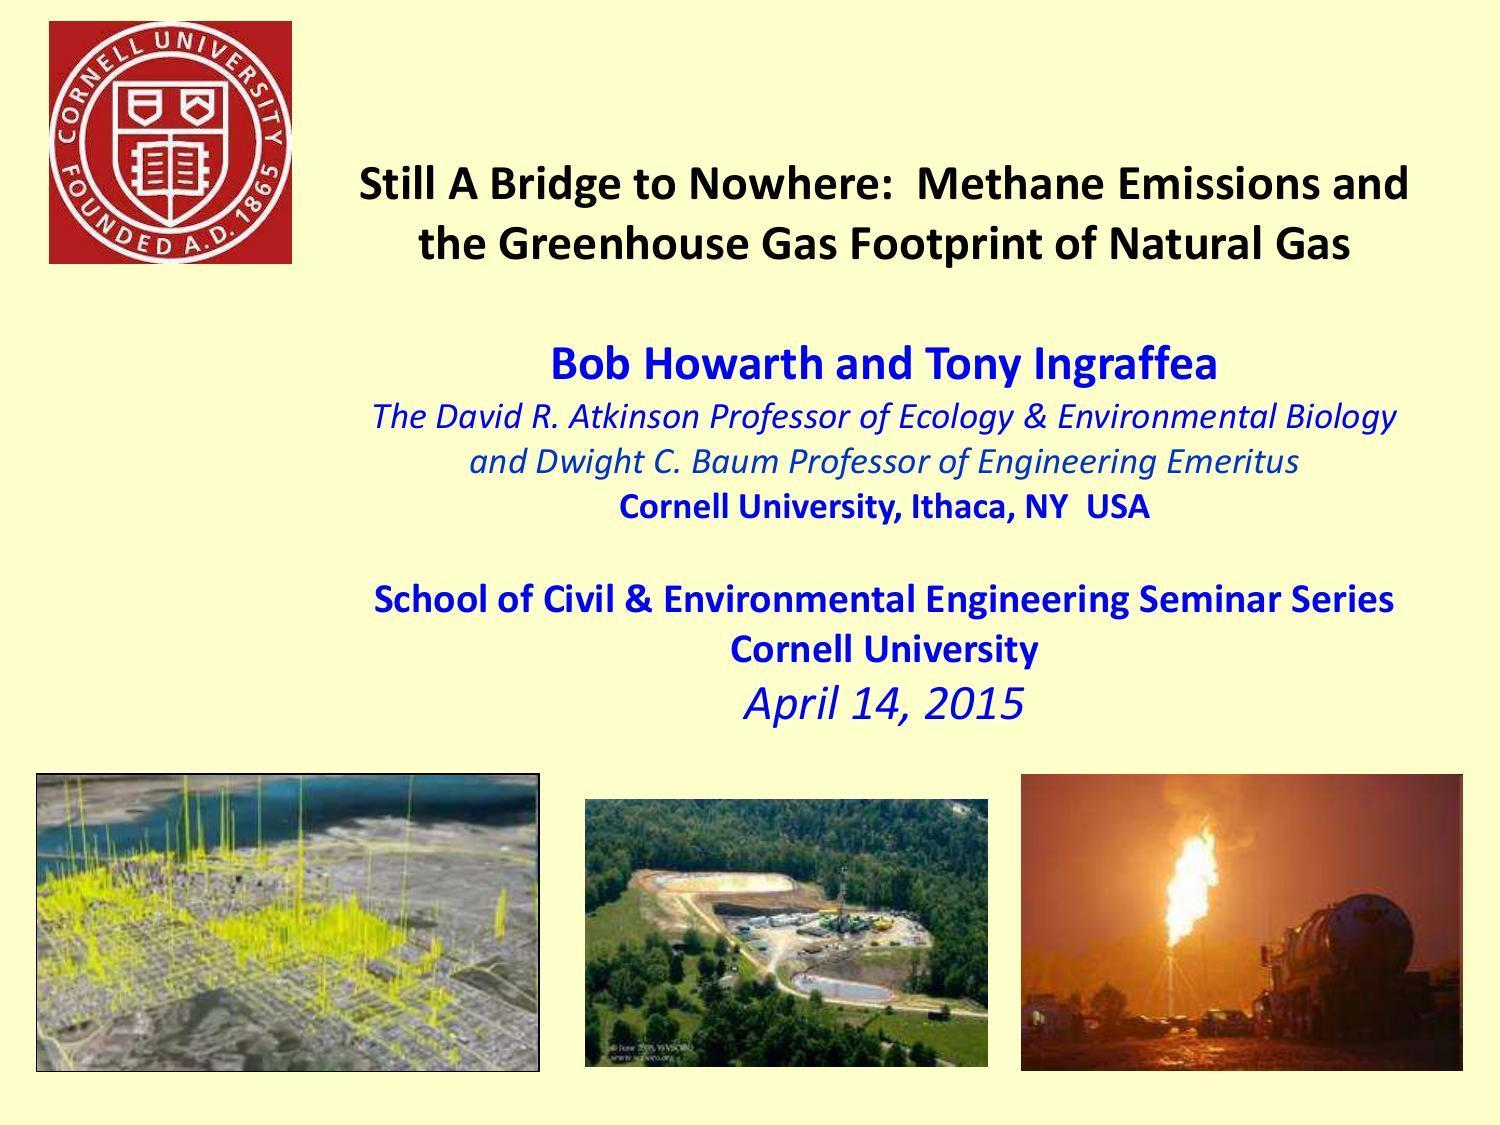 1500x1125 Cover, in Still A Bridge to Nowhere: Methane Emissions and the Greenhouse Gas Footprint of Natural Gas, by Bob Howarth and Tony lngraffea, 14 April 2015